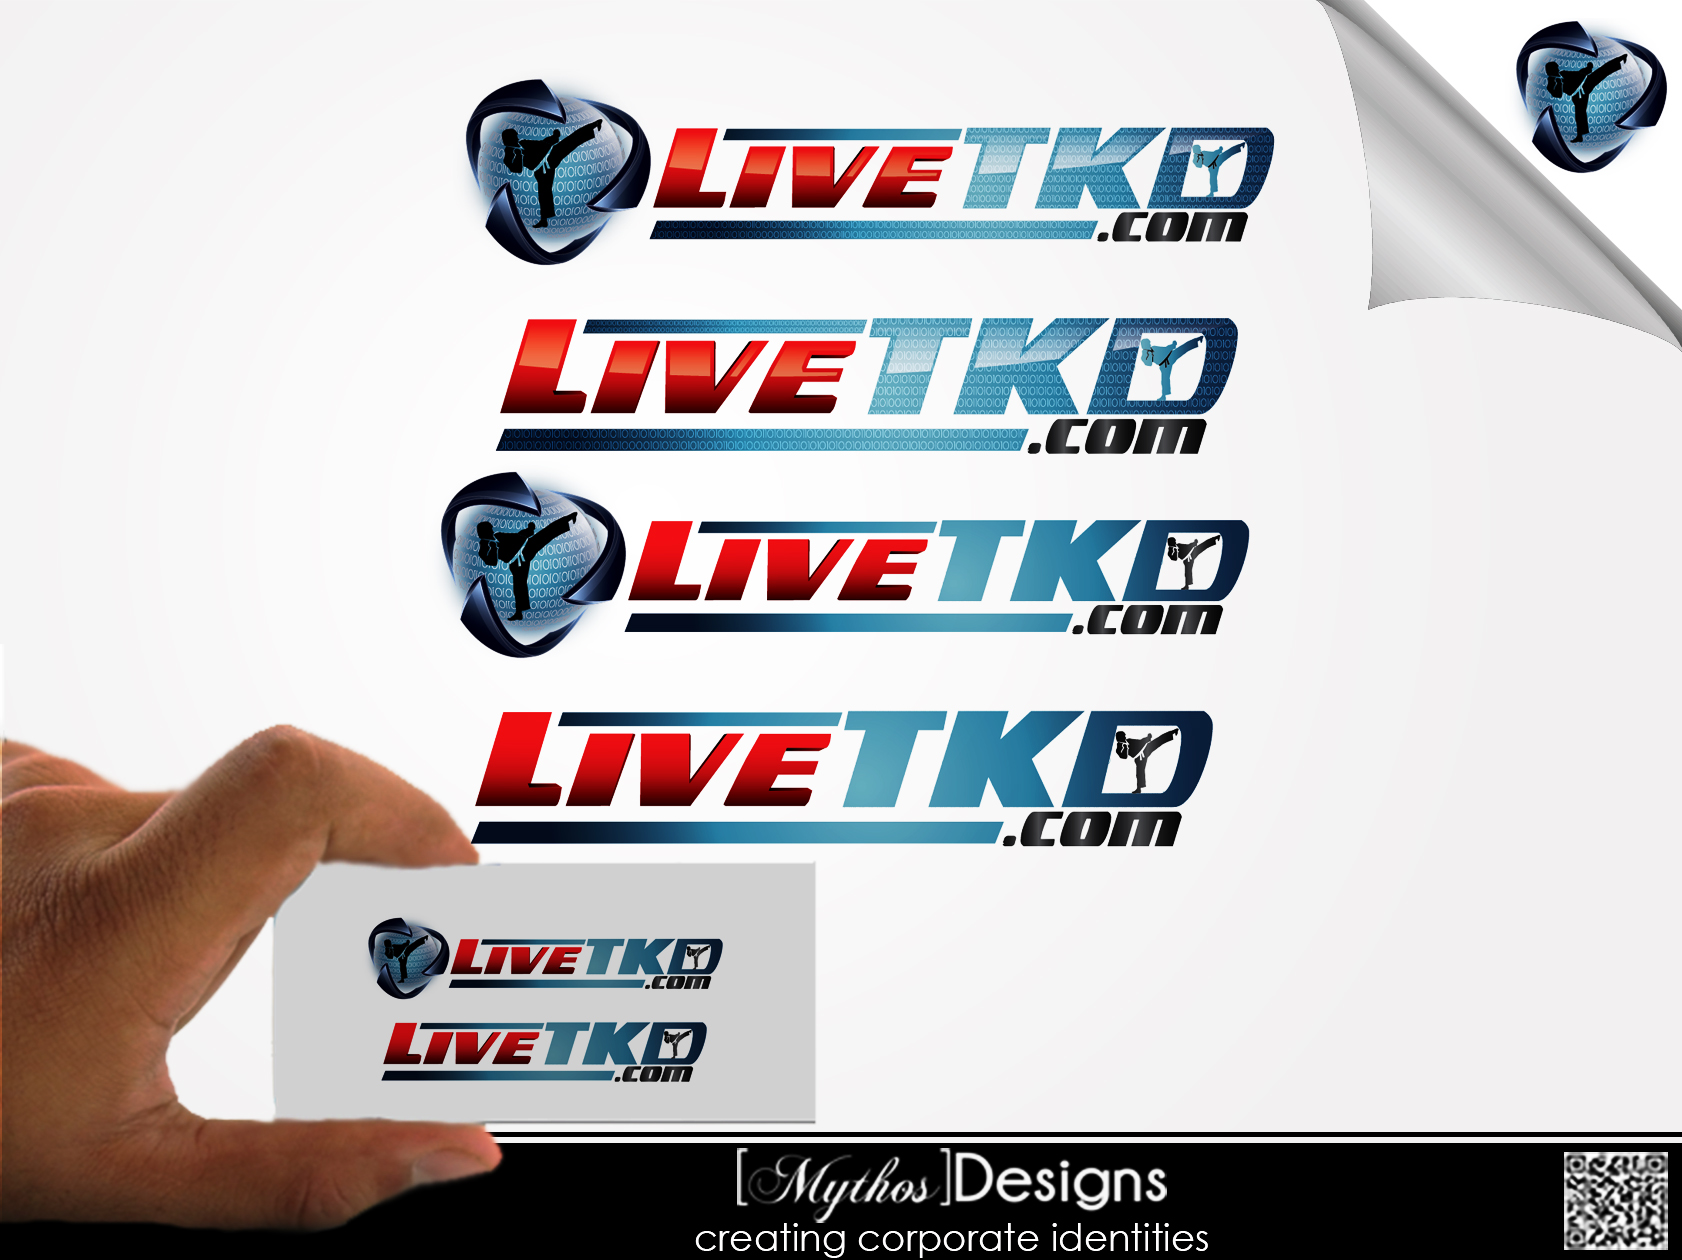 Logo Design by Mythos Designs - Entry No. 153 in the Logo Design Contest New Logo Design for LiveTKD.com.